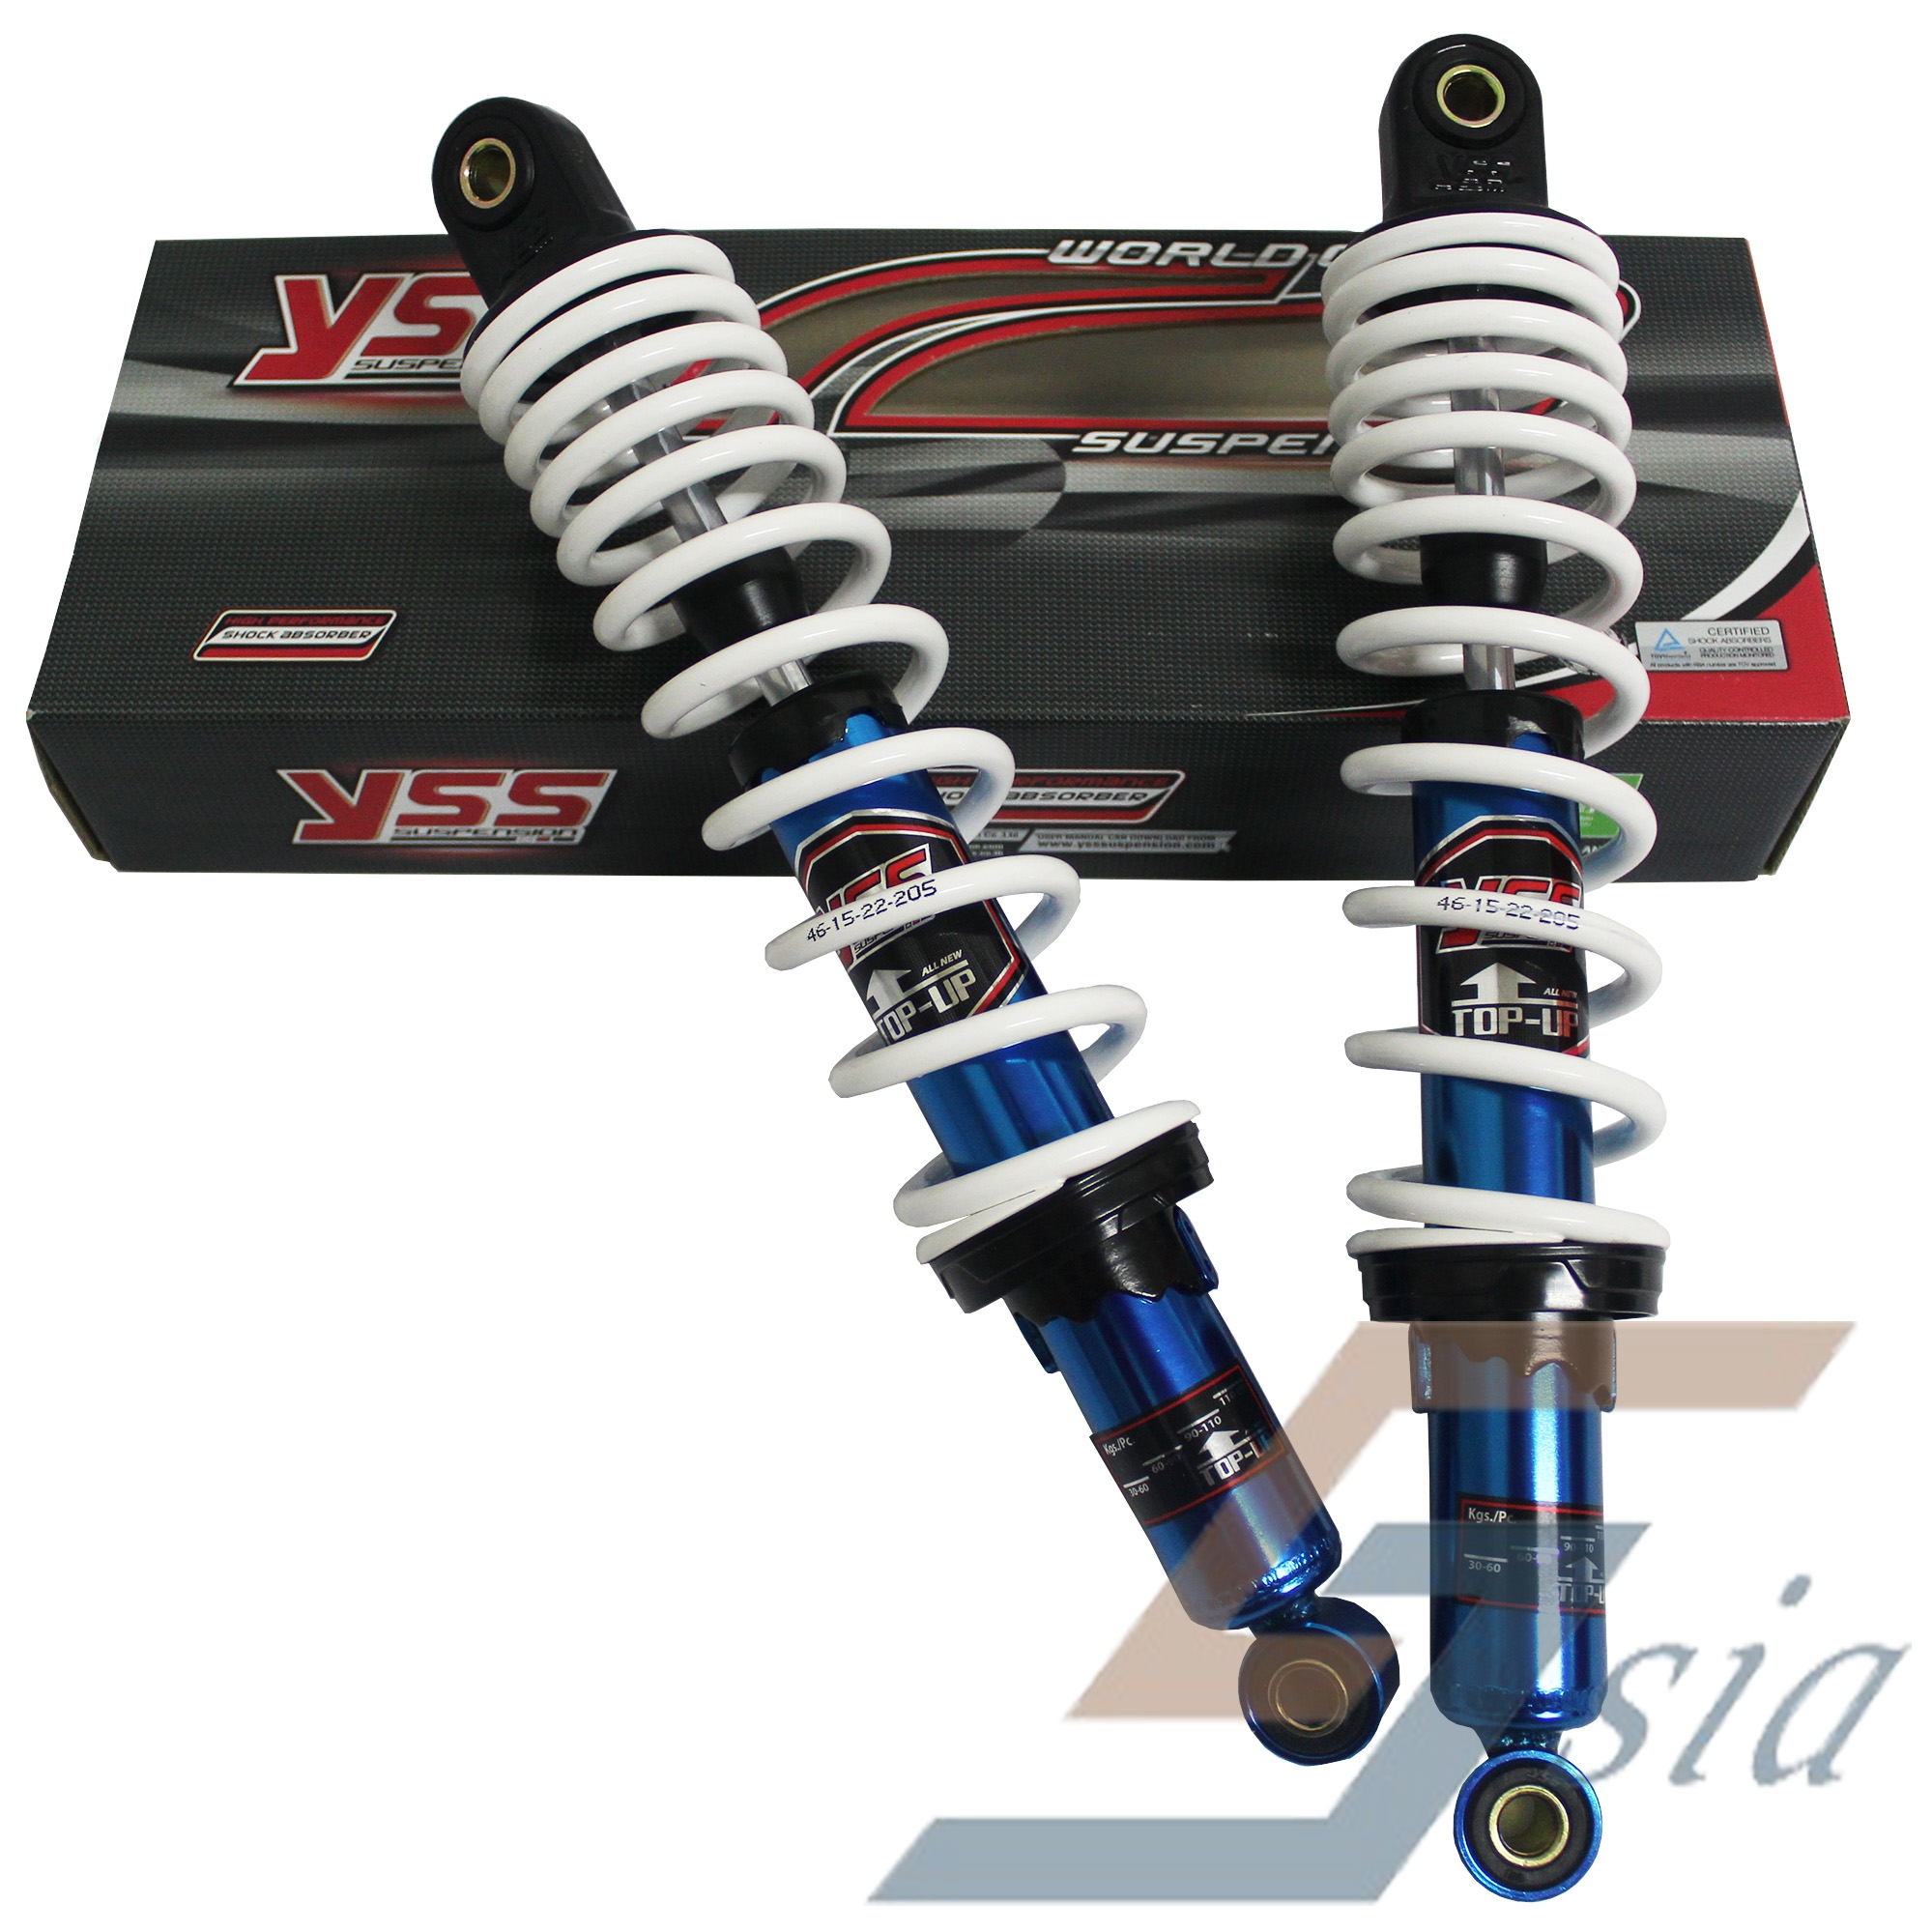 RXZ/DASH/WAVE/FUTURE YSS 340mm Top-Up Rear Suspension (Blue/White)